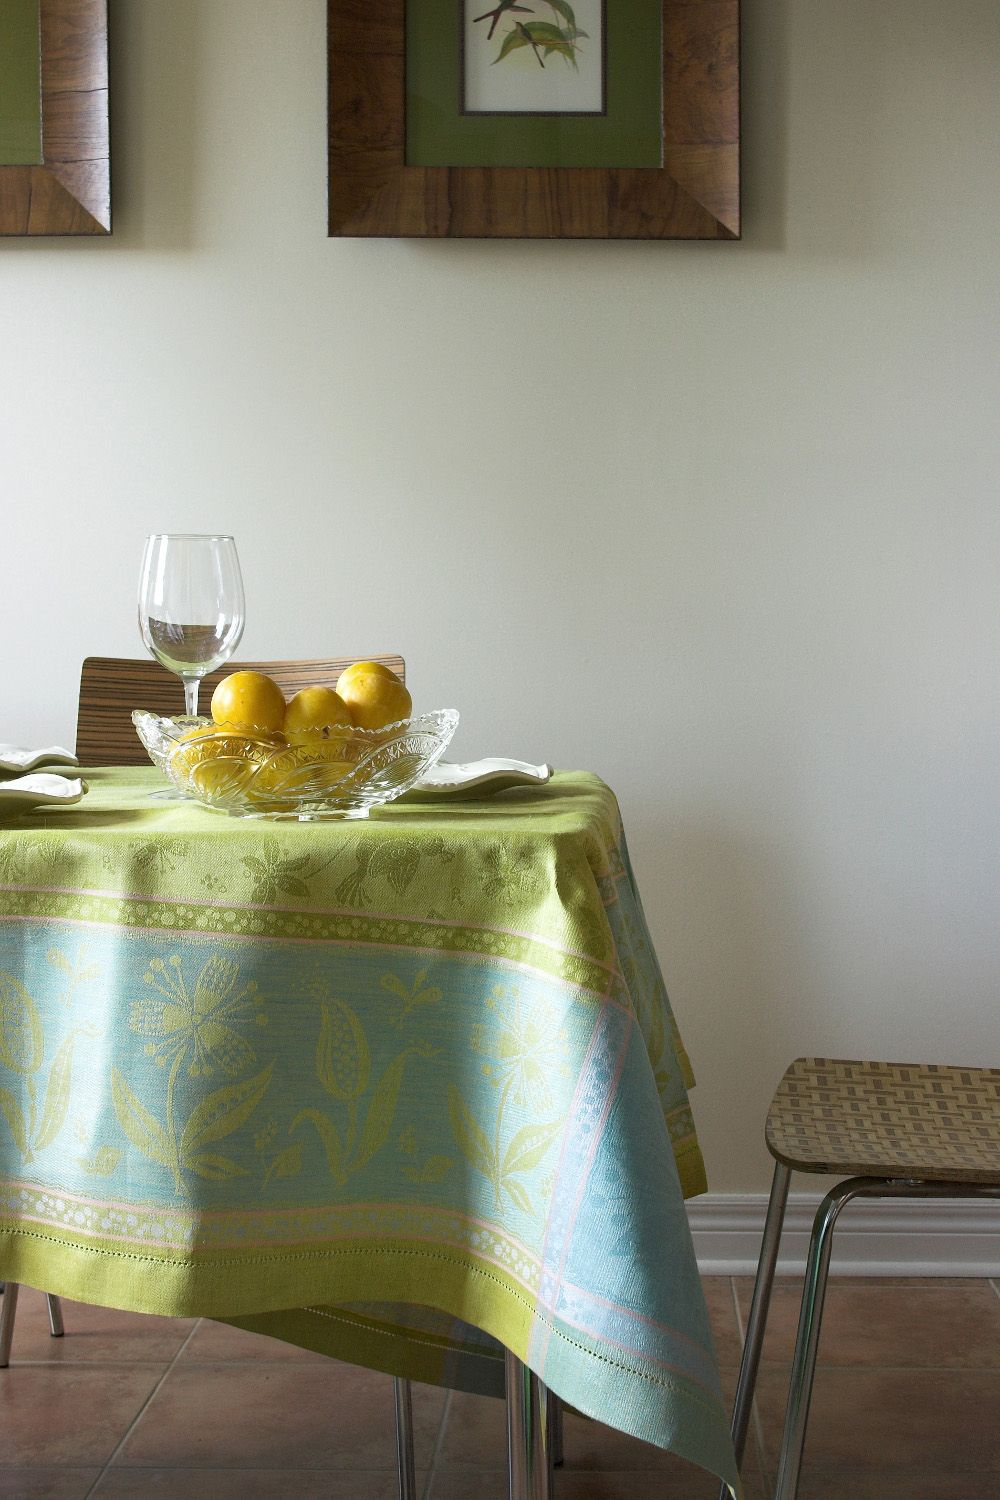 #LinenWay #Linen #Tablecloth #Linen Tablecloth # Hemstitching #Bright Color Tablecloth #Spring Summer Tablecloth